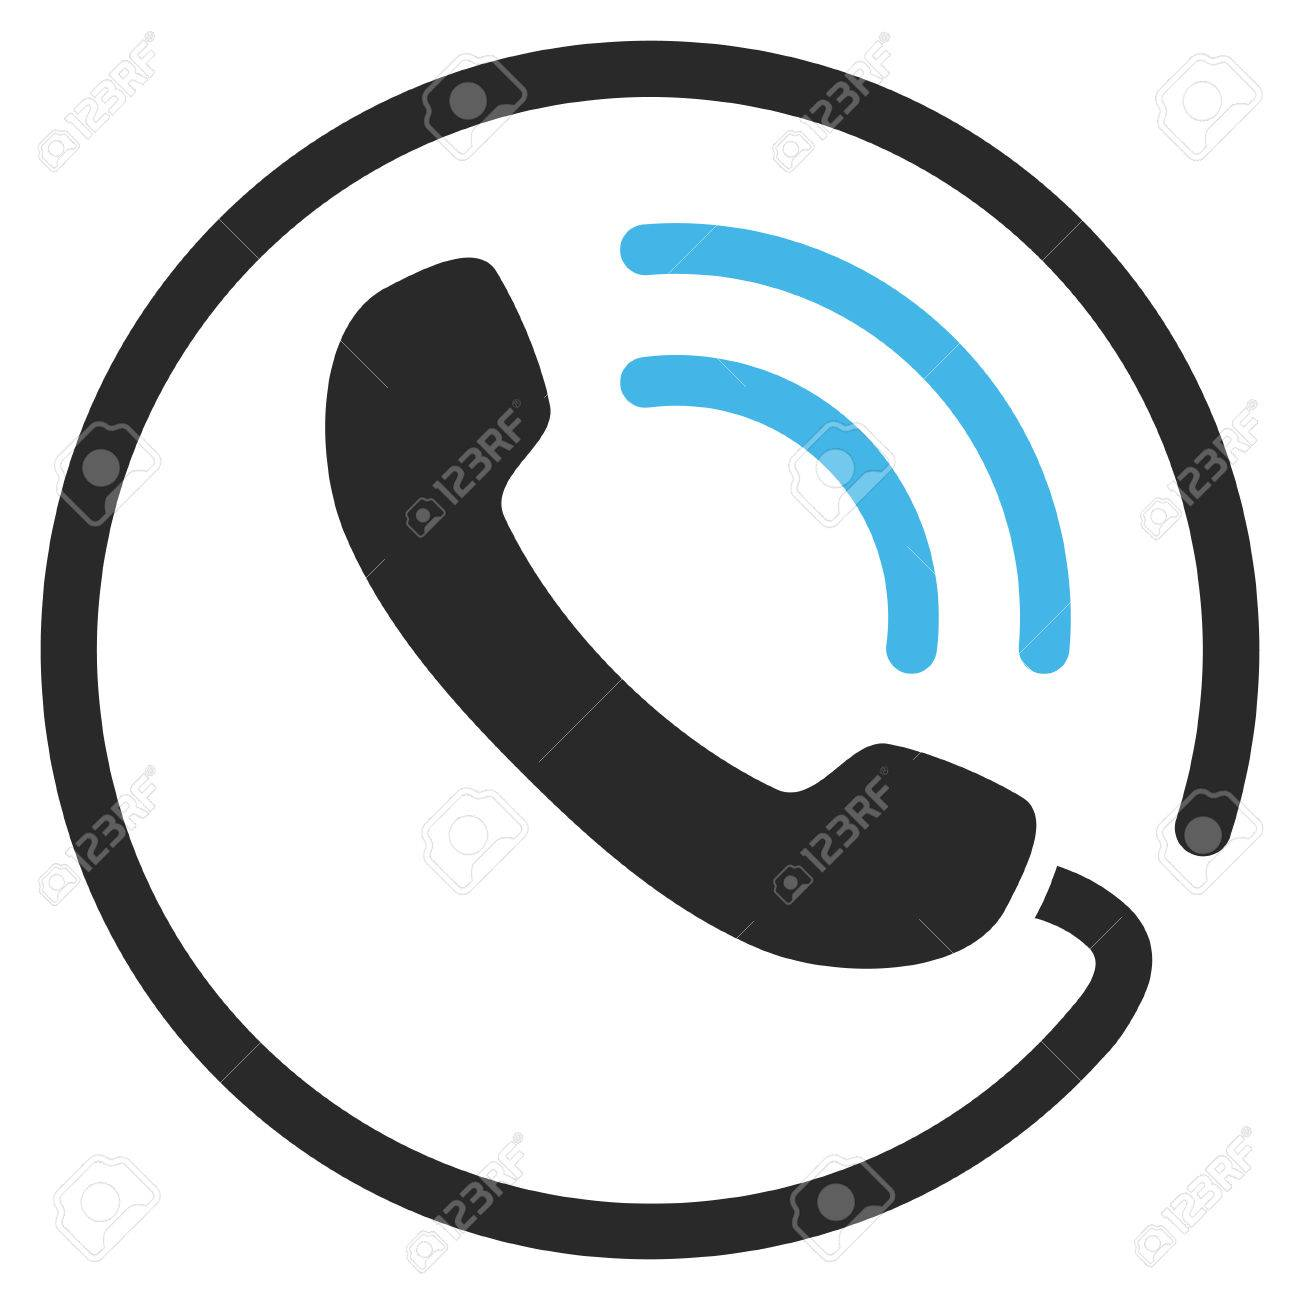 telephone call vector icon picture style is bicolor flat phone rh 123rf com phone vector icon set phone icon vector ai